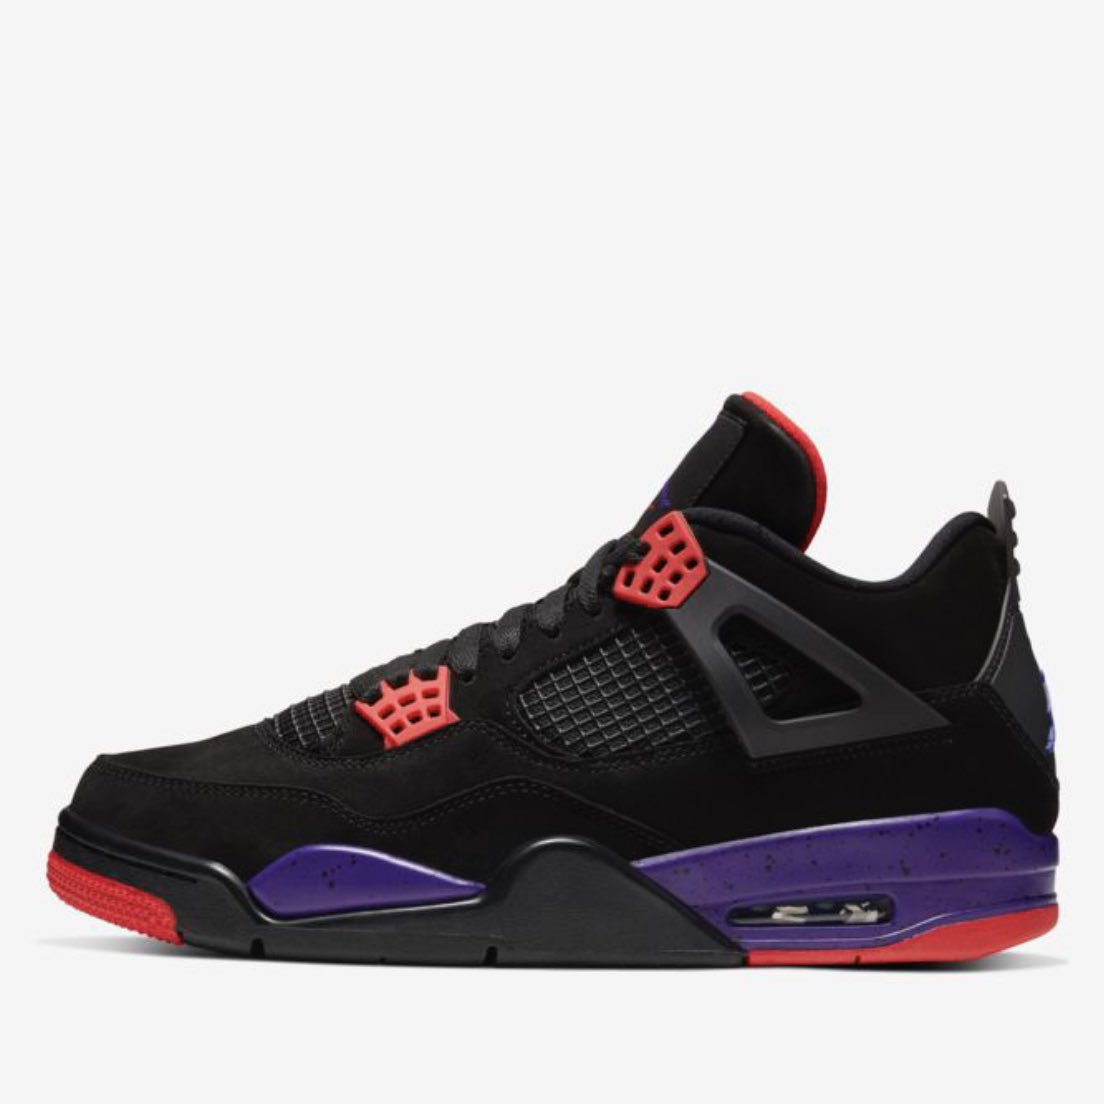 a09f892cf68 raptors air jordan 4s with drakes signature on the tongue dropped on snkrs  and ovo this